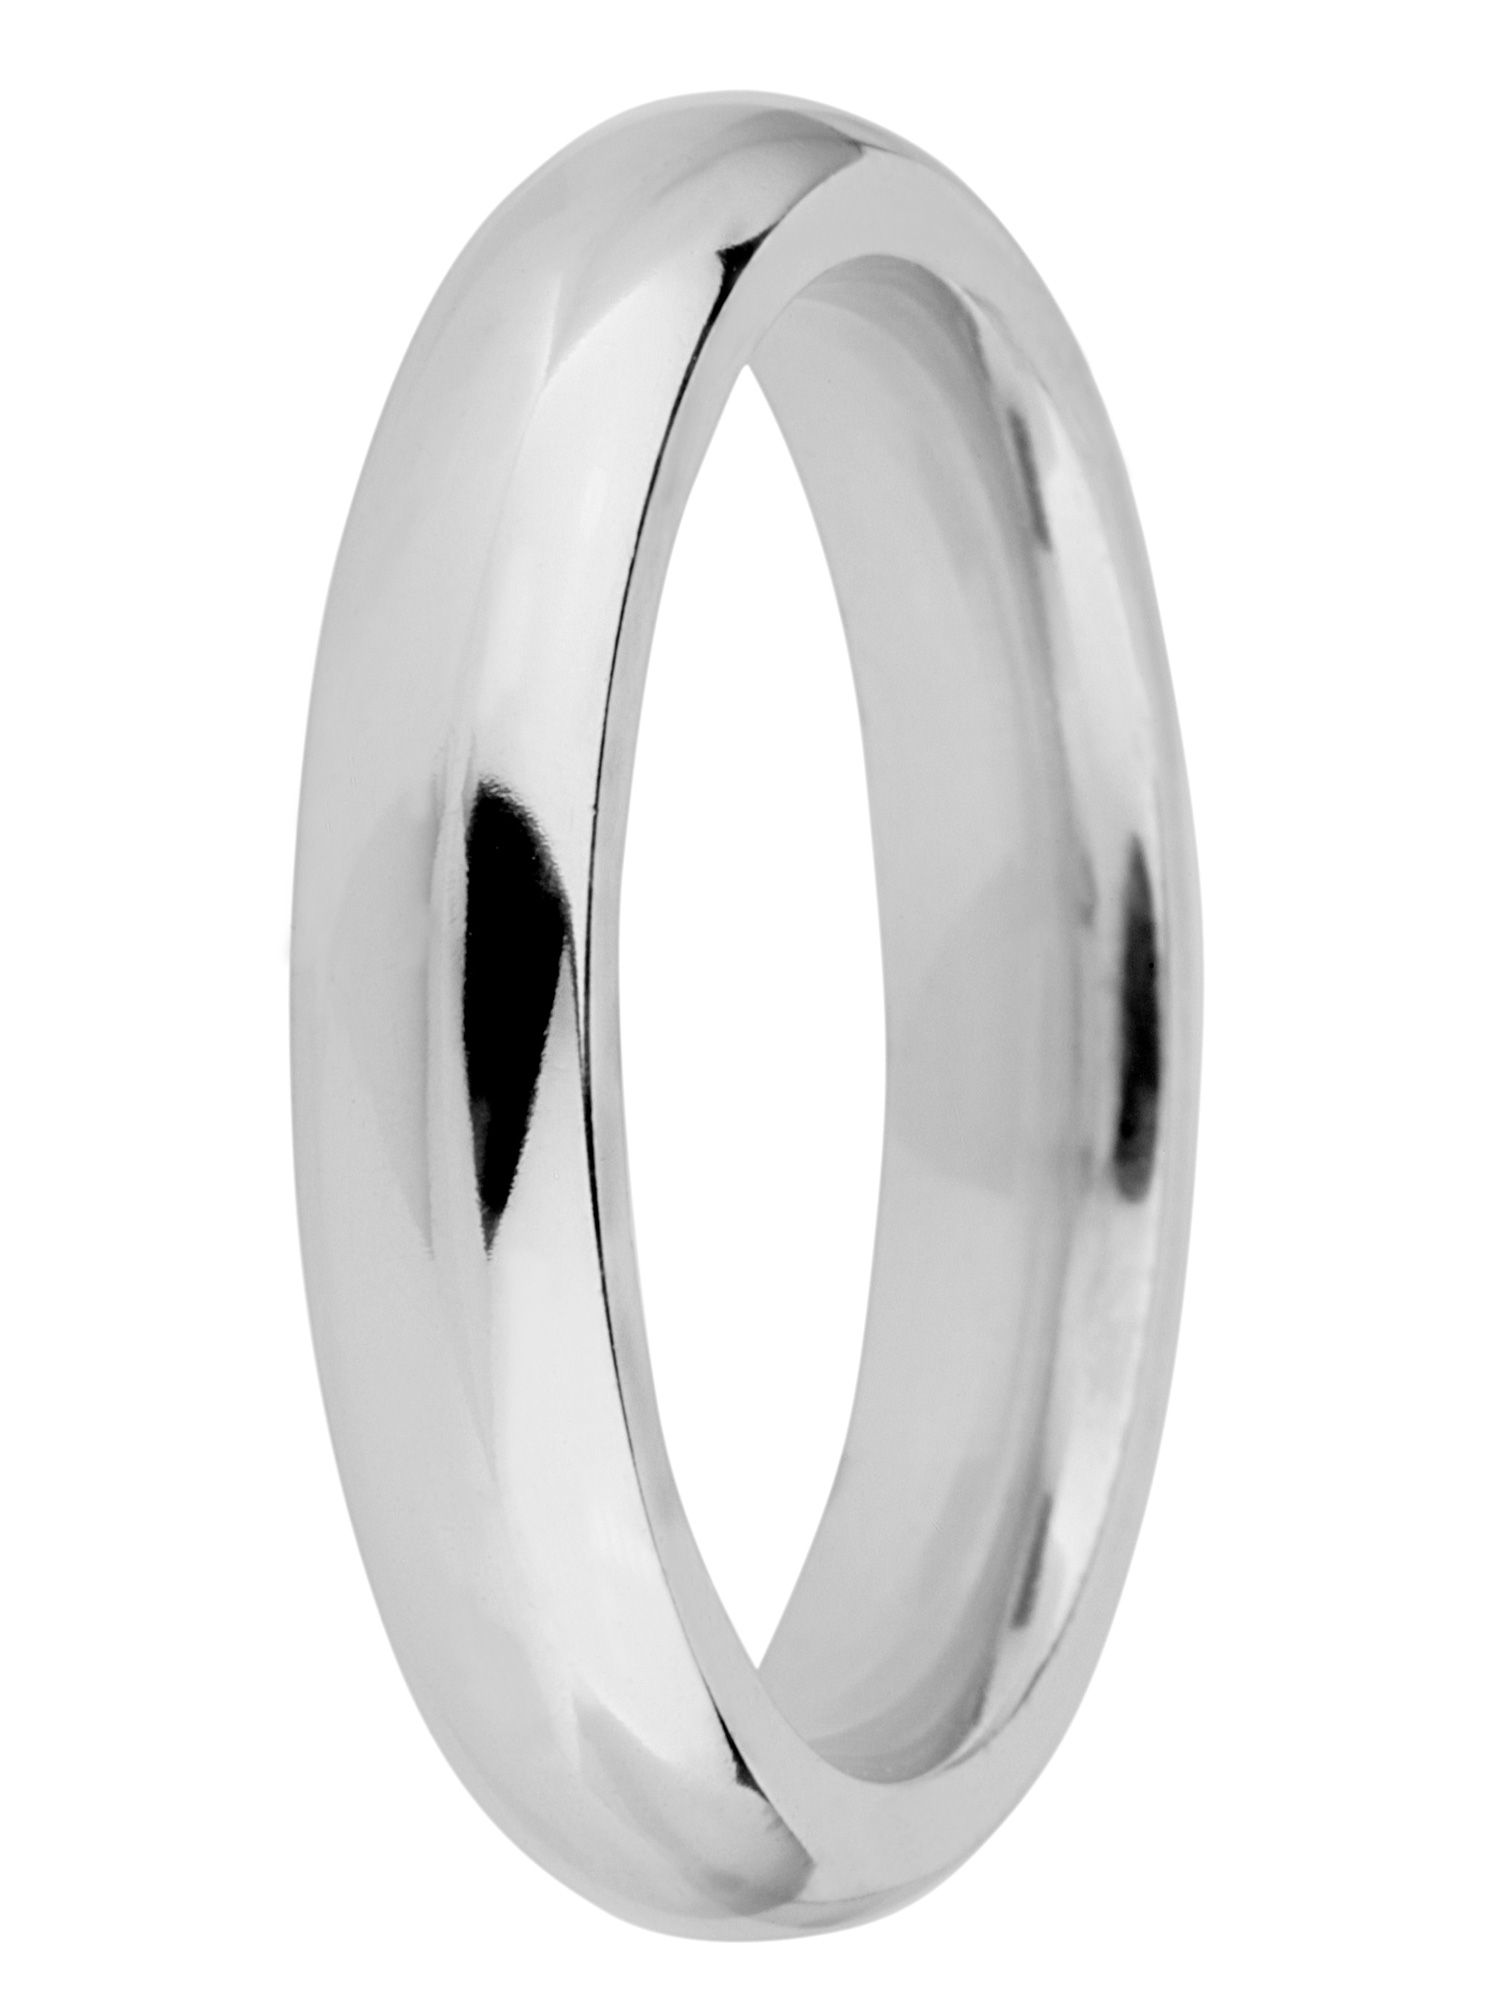 Grooms 9ct gold 4mm court wedding ring - White Gold